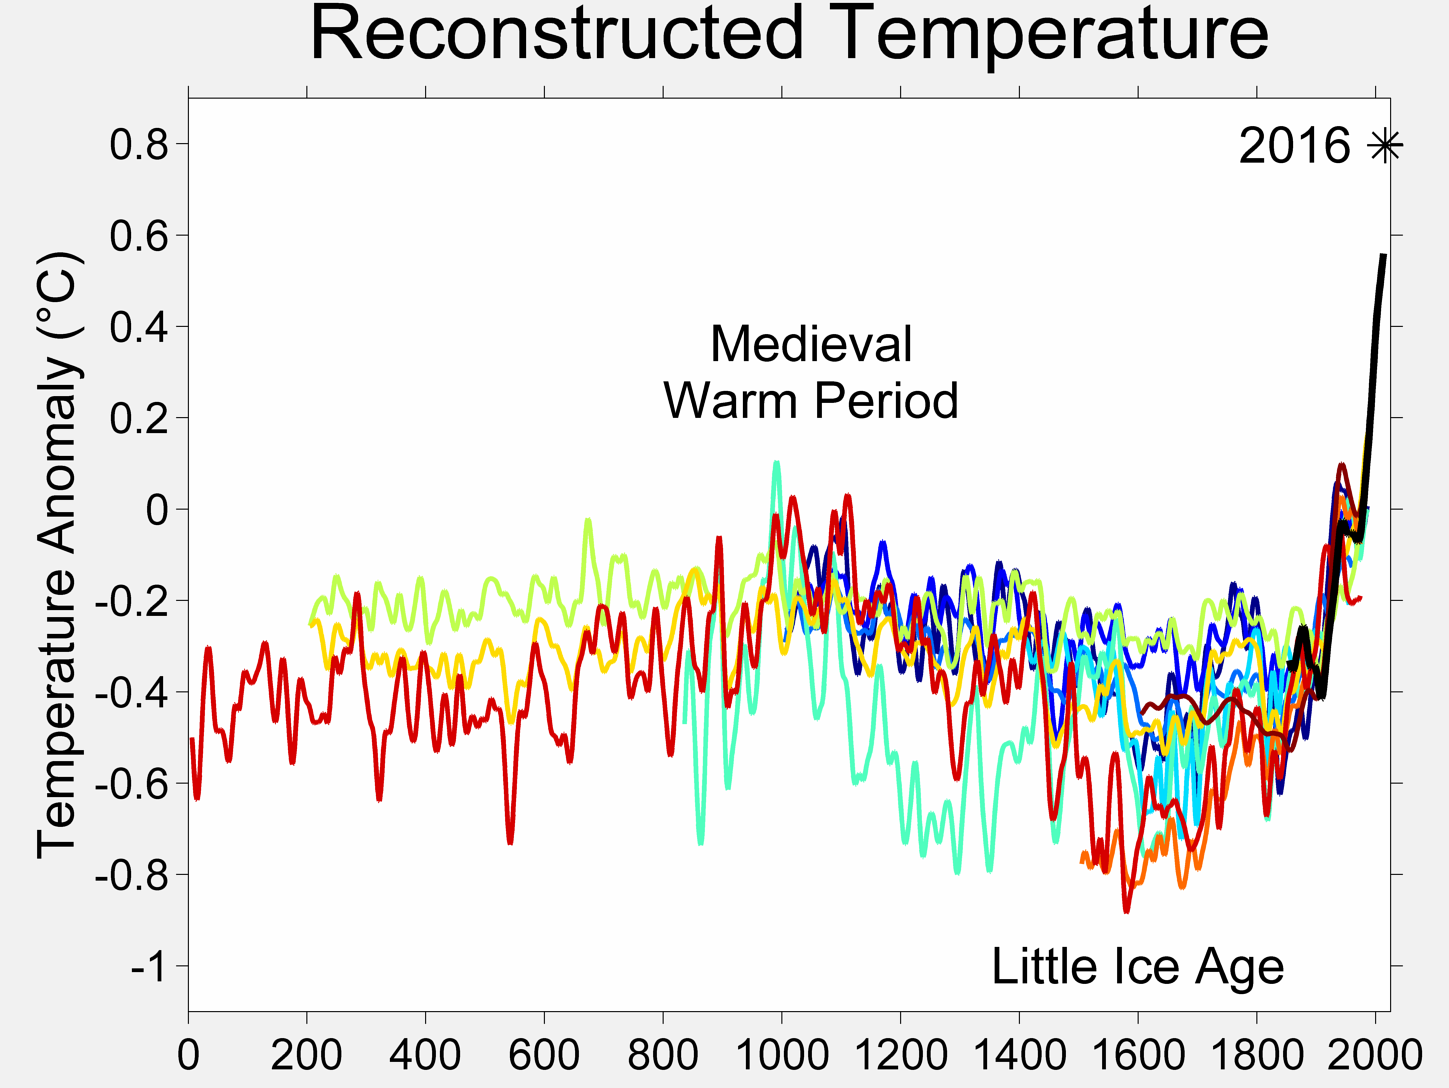 Graph showing a 0.4 degree temperature variation over the last 2 thousand years